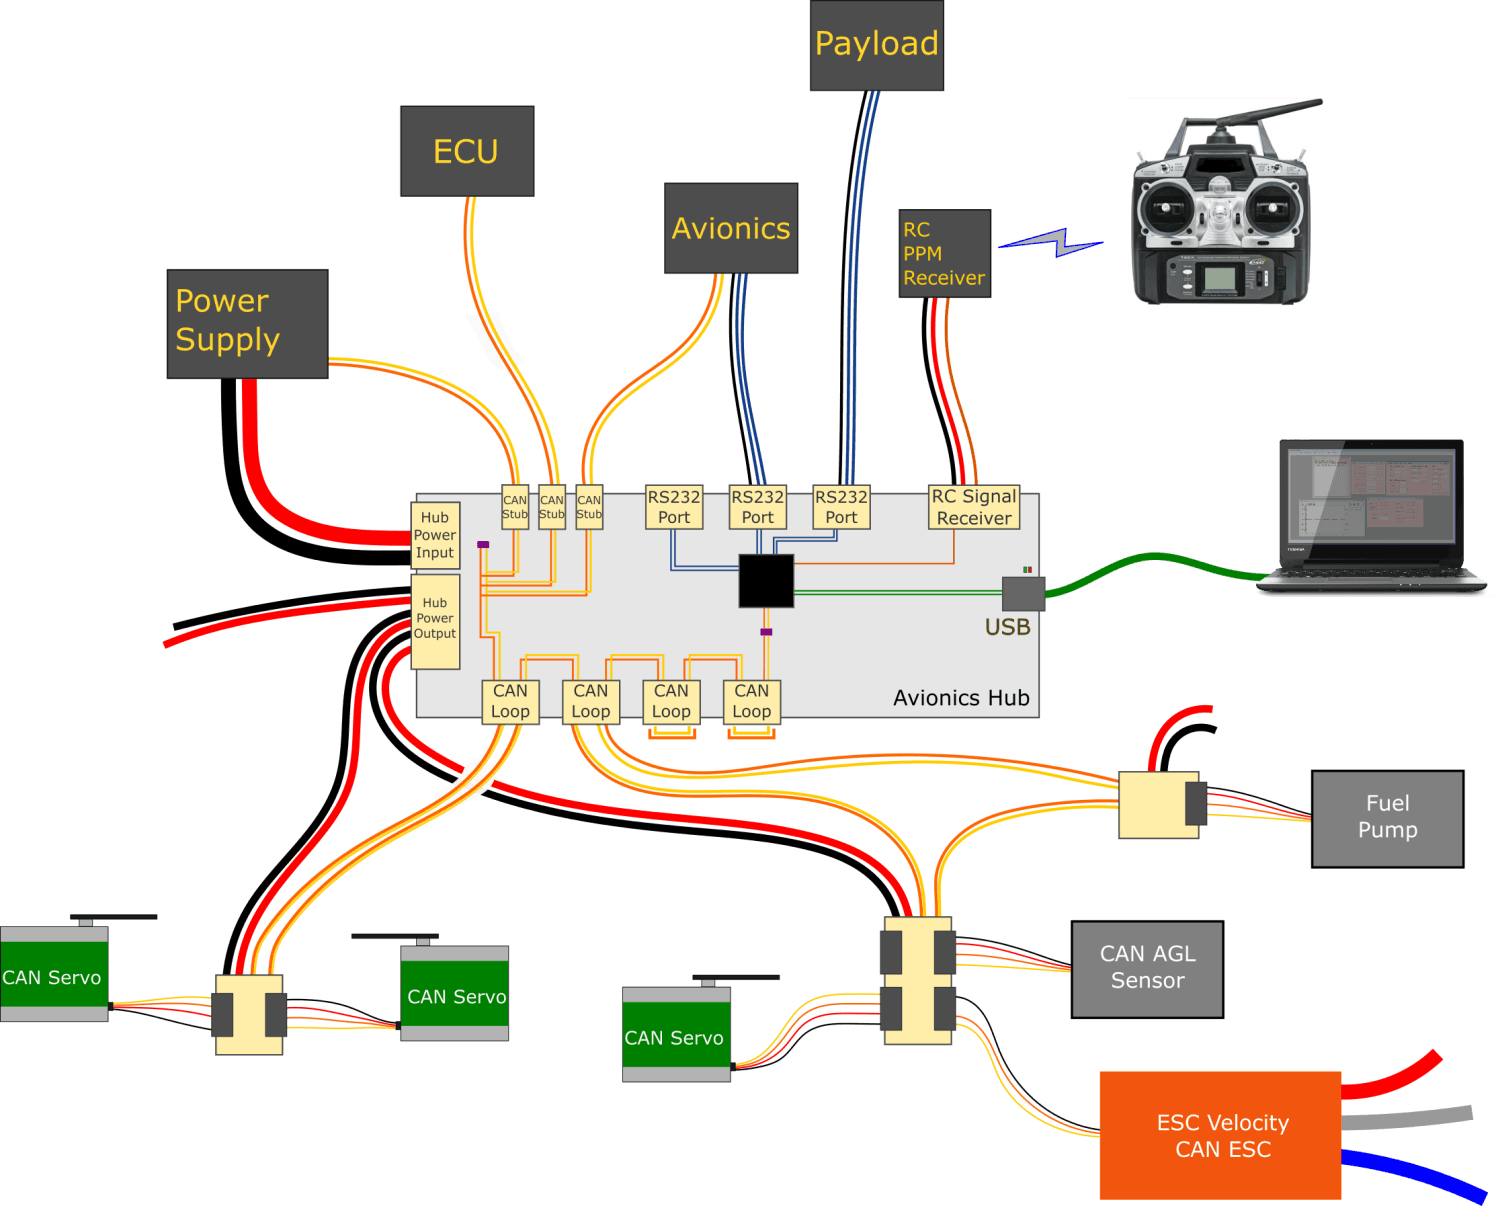 Avionics Hub Provides A Central Routing Point For Can Inside The Airframe